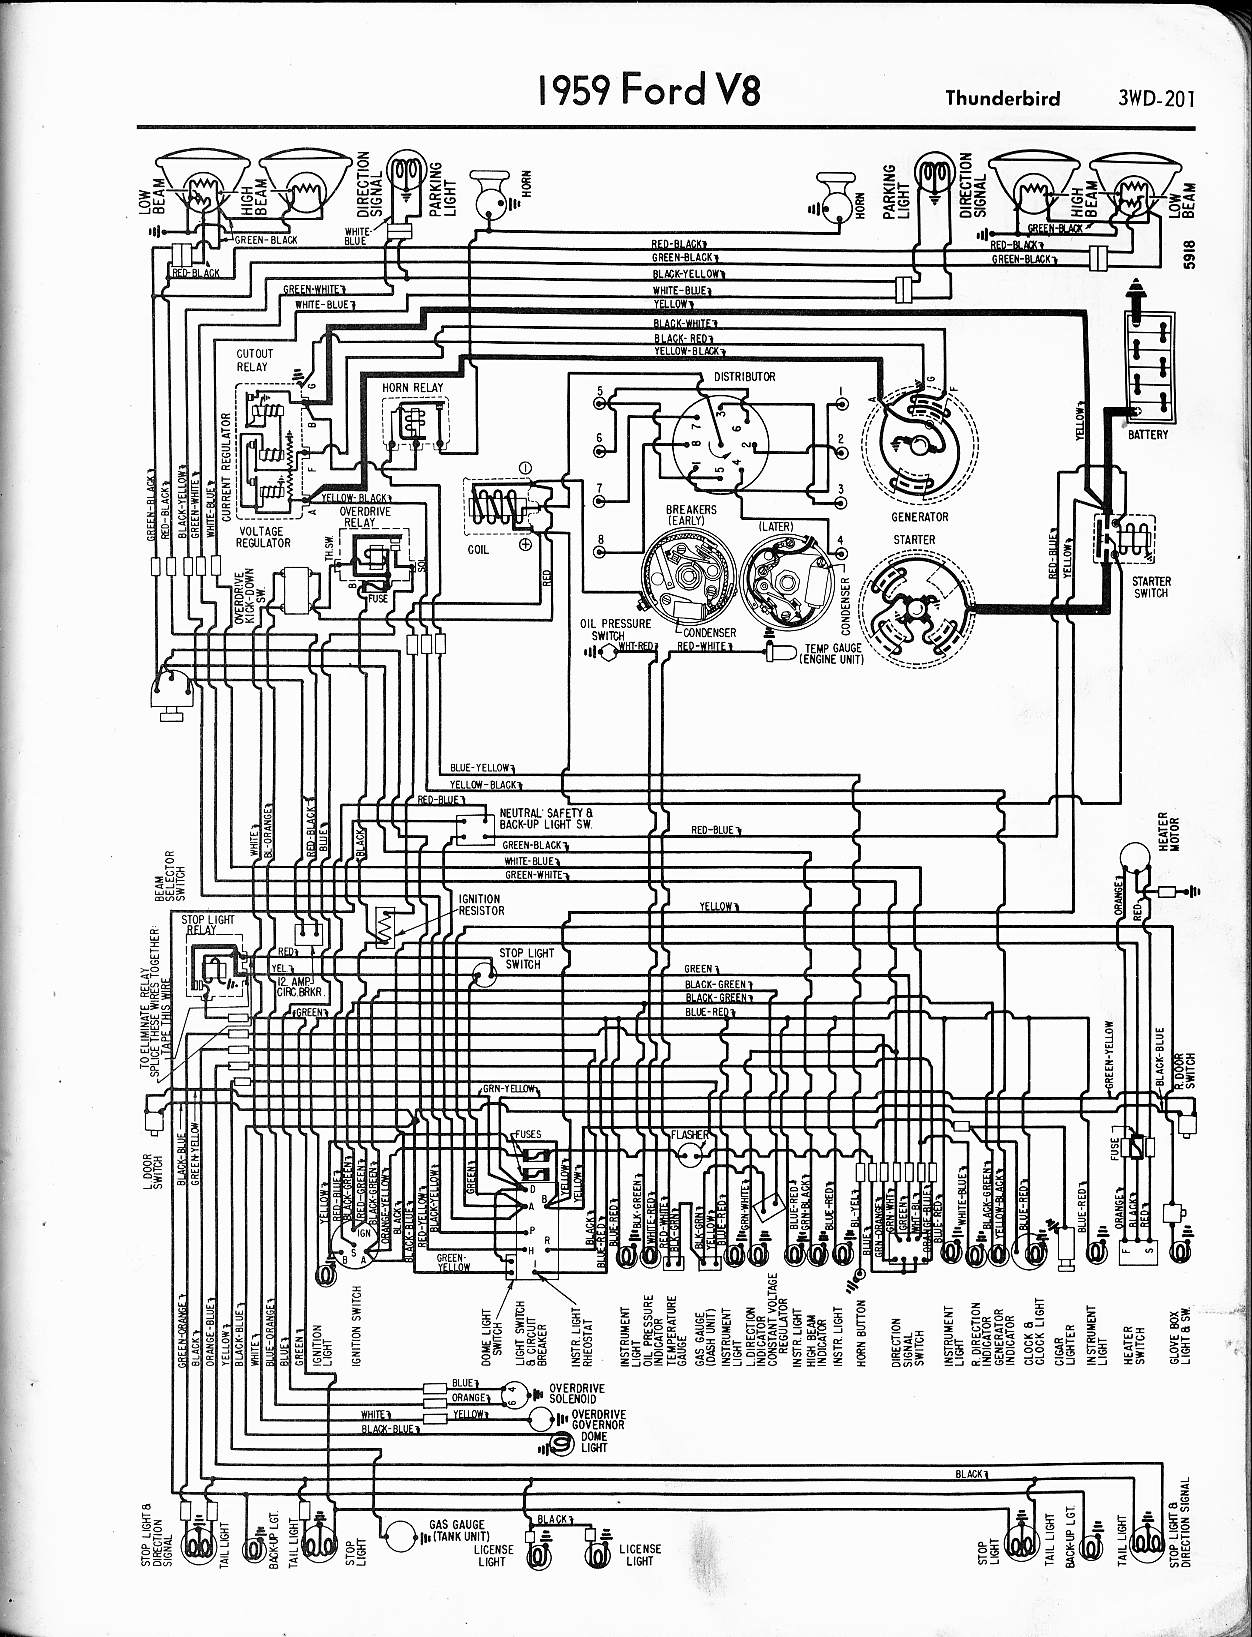 57 65 ford wiring diagrams 1985 Ford Truck Alternator Wiring Diagrams 1972 Ford Alternator Wiring Diagram #17